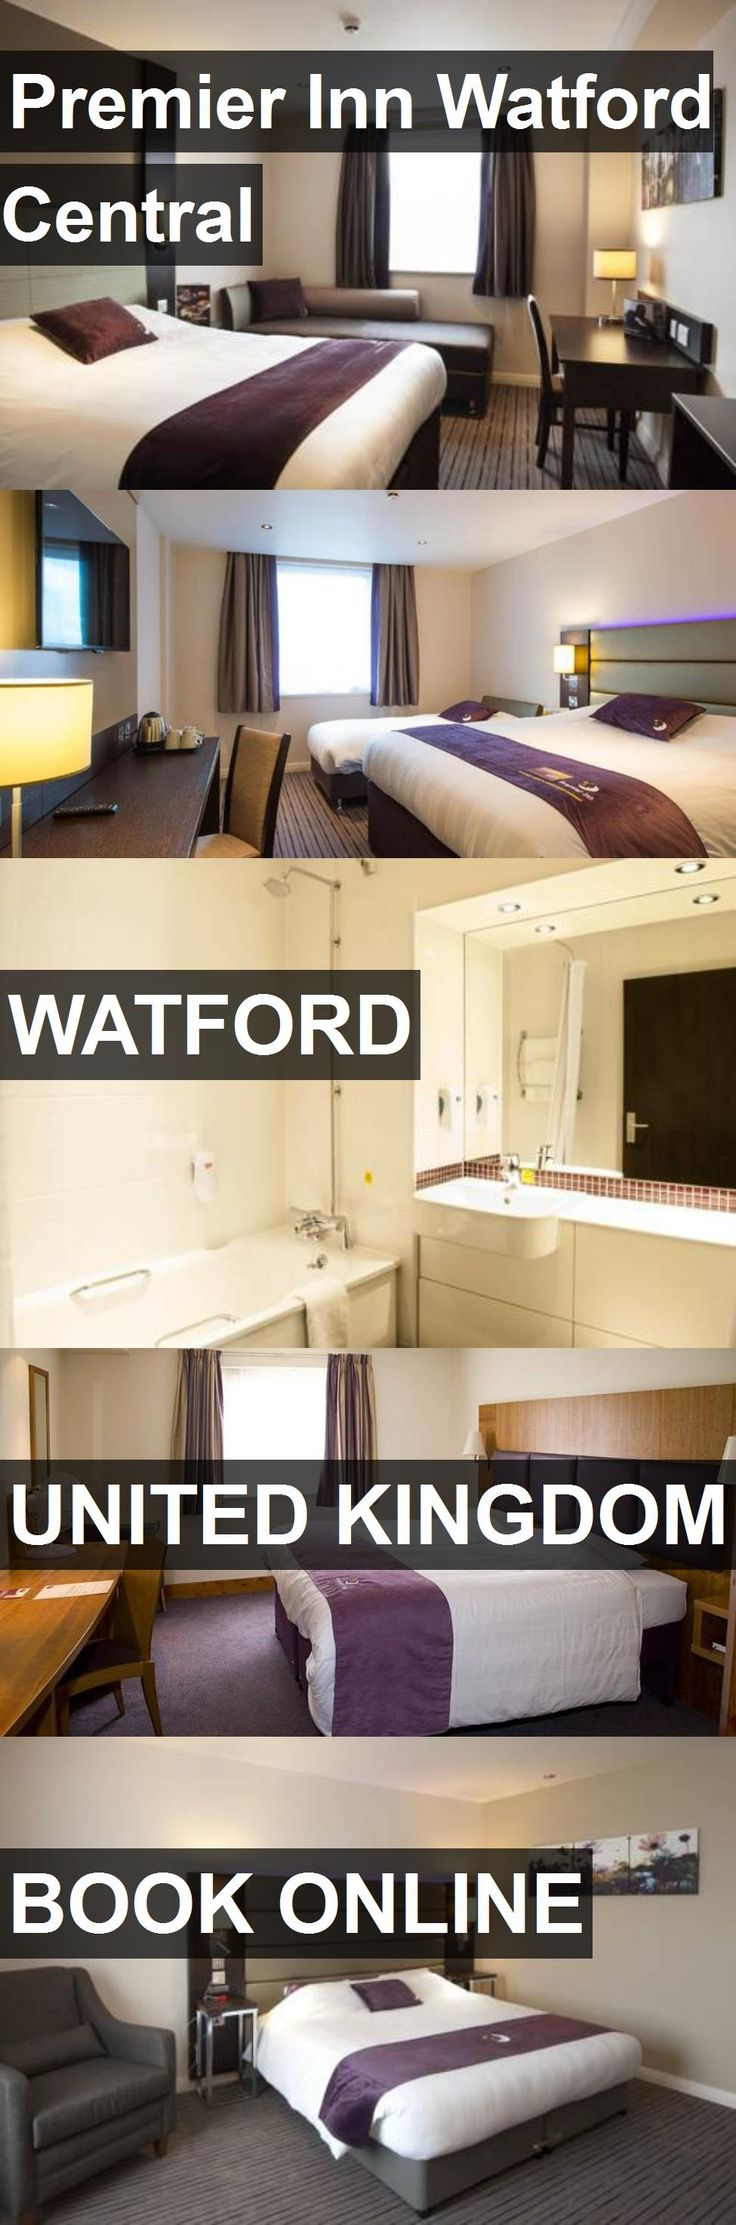 Hotel Premier Inn Watford Central in Watford, United Kingdom. For more information, photos, reviews and best prices please follow the link. #UnitedKingdom #Watford #travel #vacation #hotel